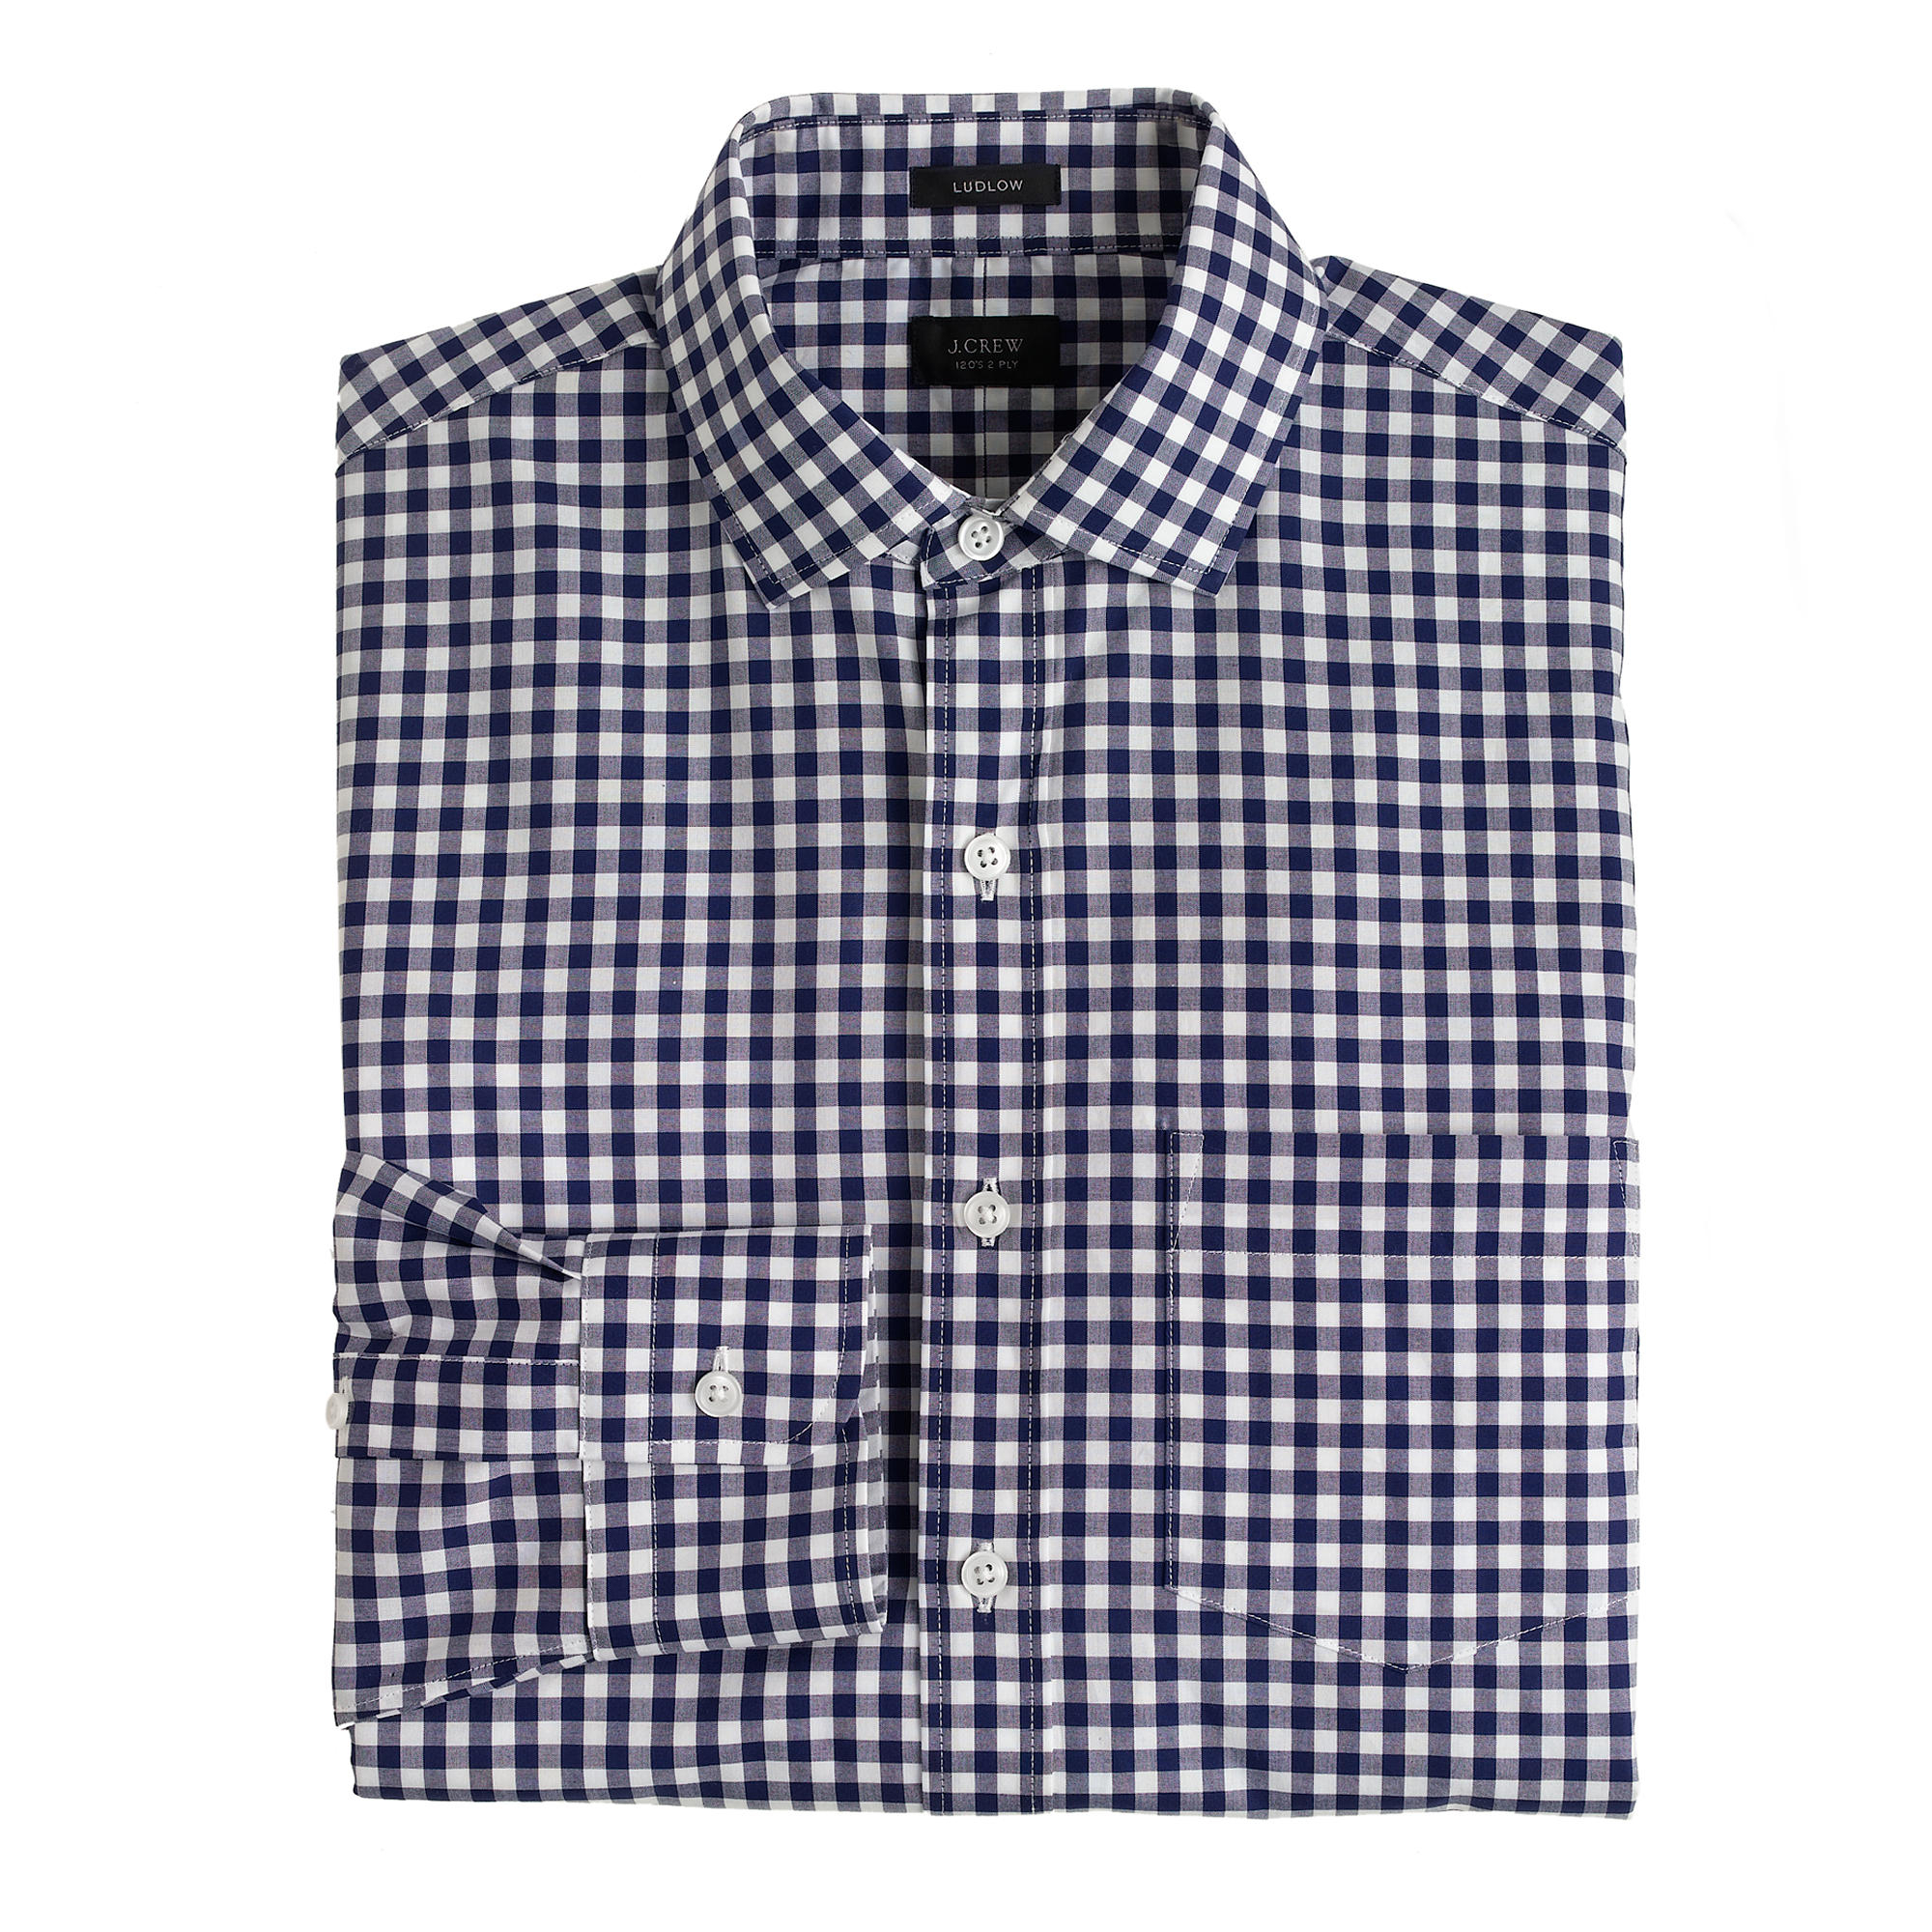 Ludlow Spread Collar Shirt In Navy Gingham In Blue